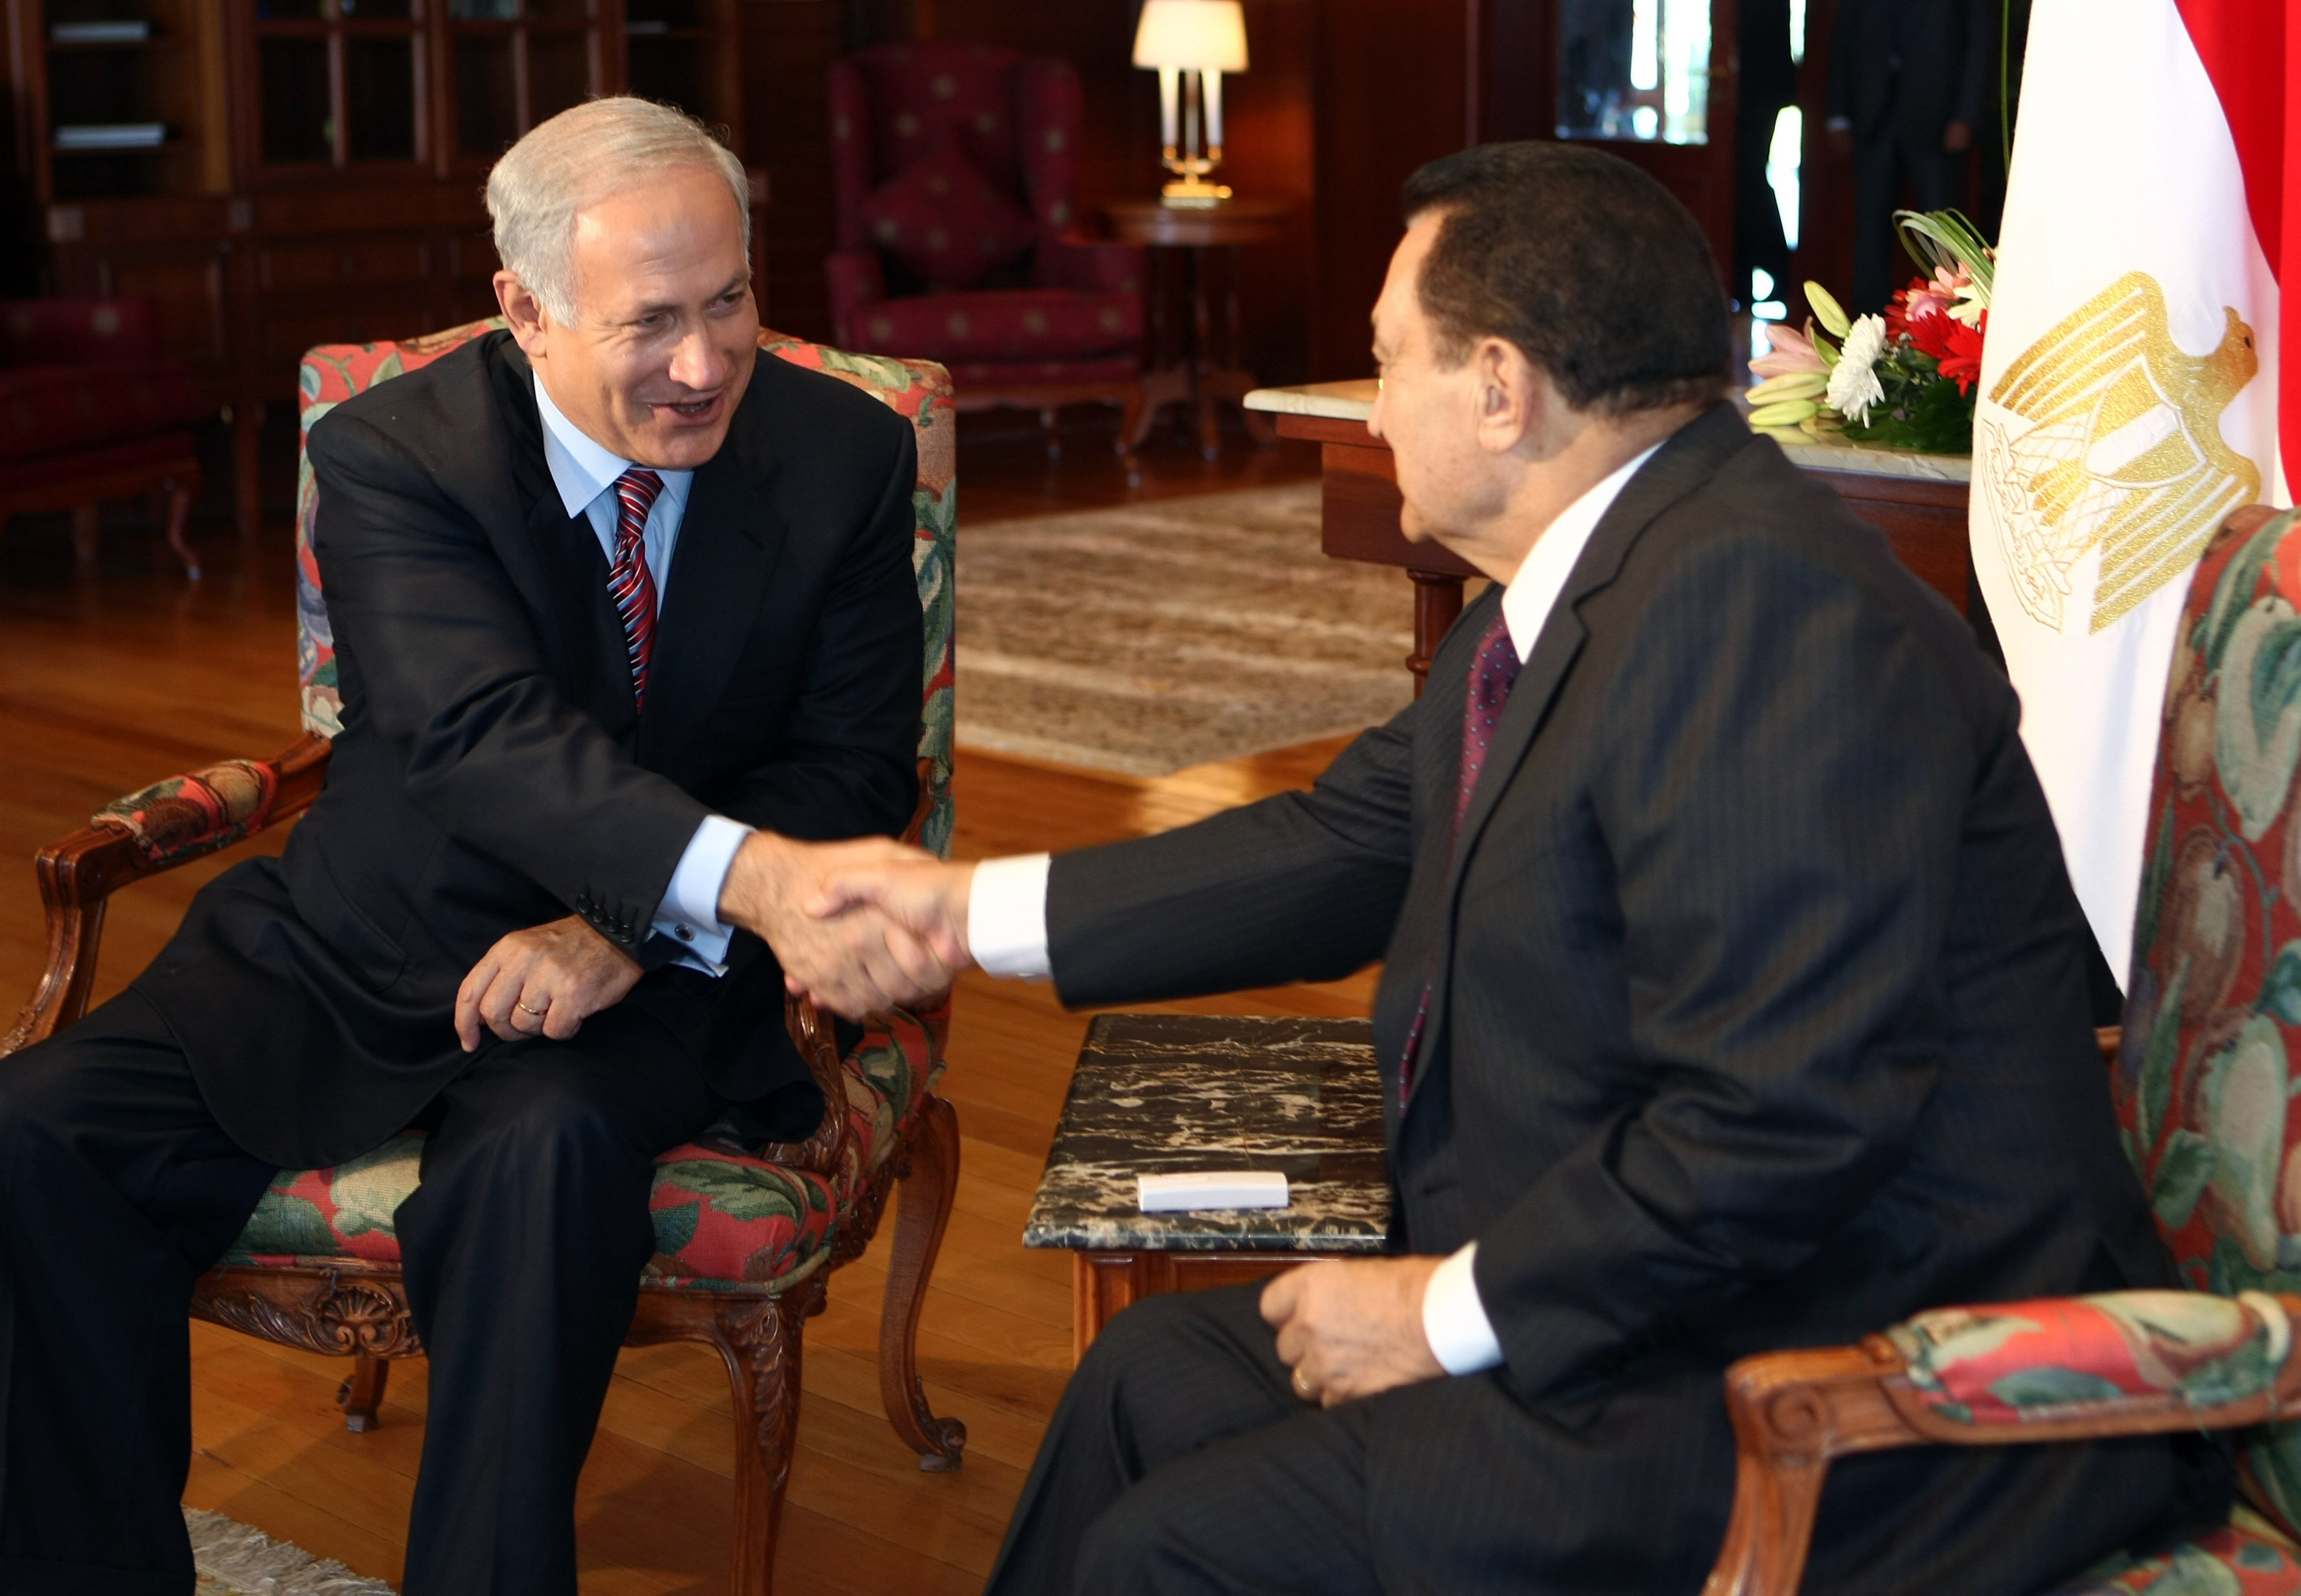 Egyptian President Hosni Mubarak (R) shakes hands with Israeli Prime Minister Benjamin Netanyahu (L) during a meeting in the Egyptian Red Sea resort town of Sharm El-Sheikh on May 11, 2009.